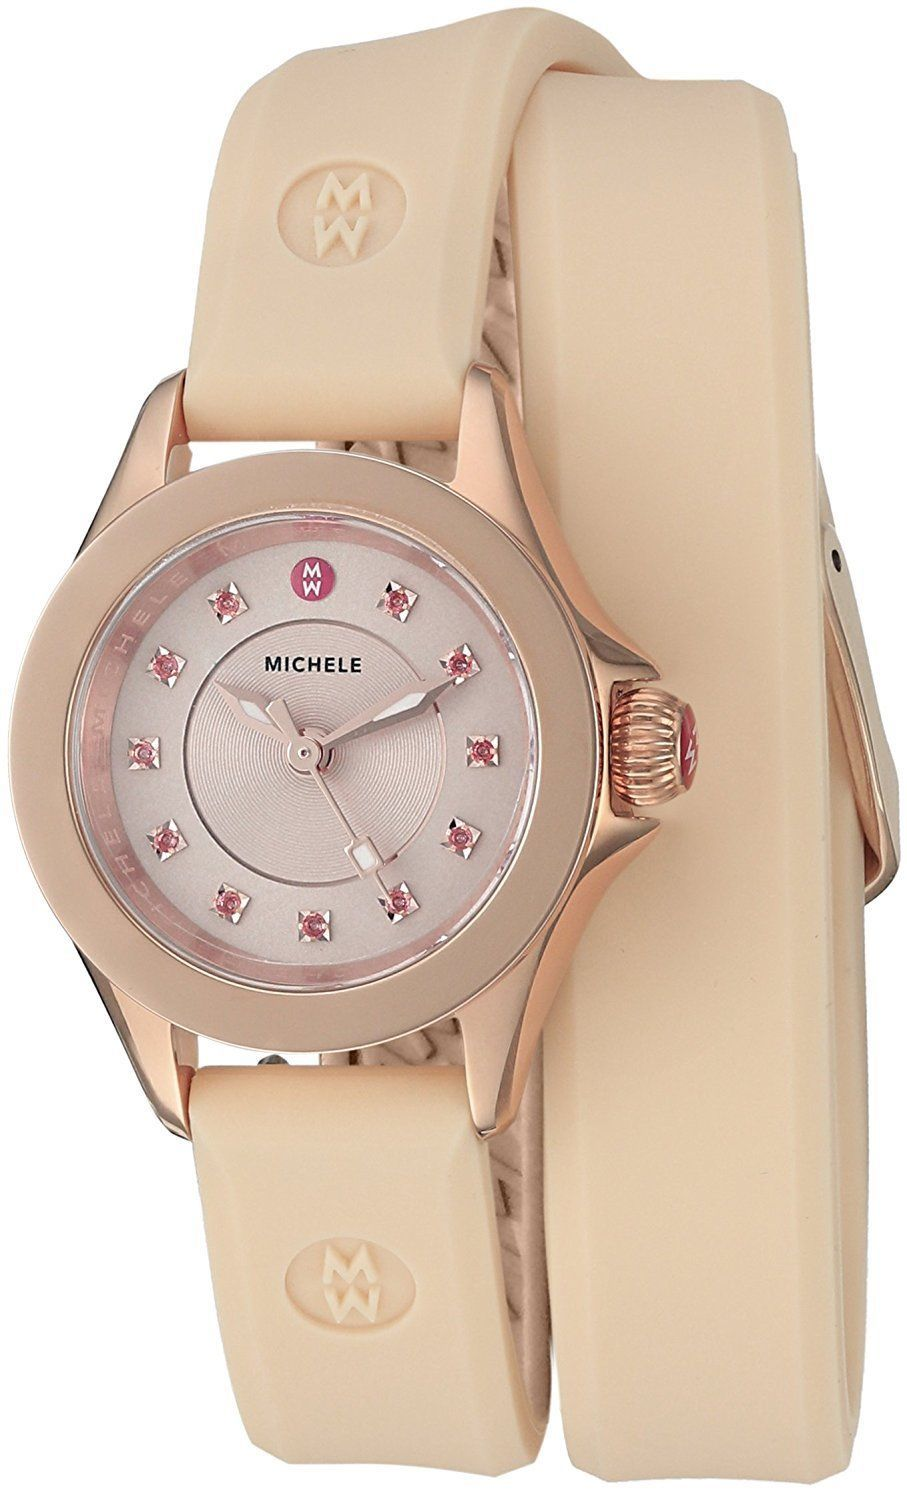 Primary image for MICHELE Women's Cape Mini Double Wrap Blush Pink Watch MWW27B000001